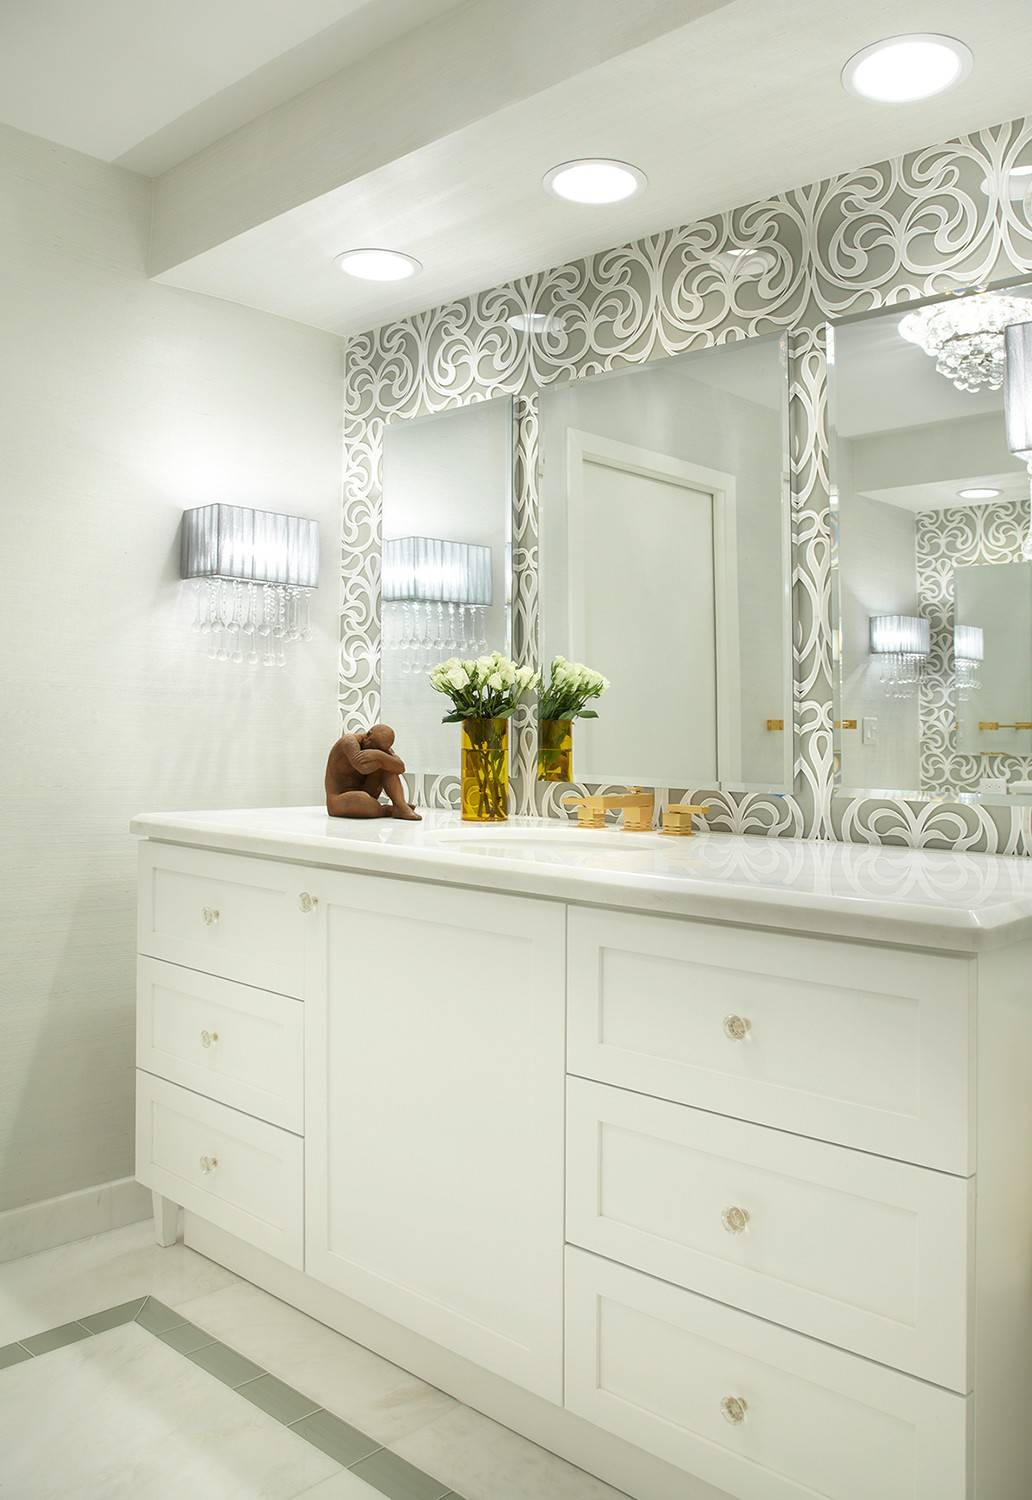 Instead of one large master bathroom, designers today are suggesting two smaller ones to avoid conflict.